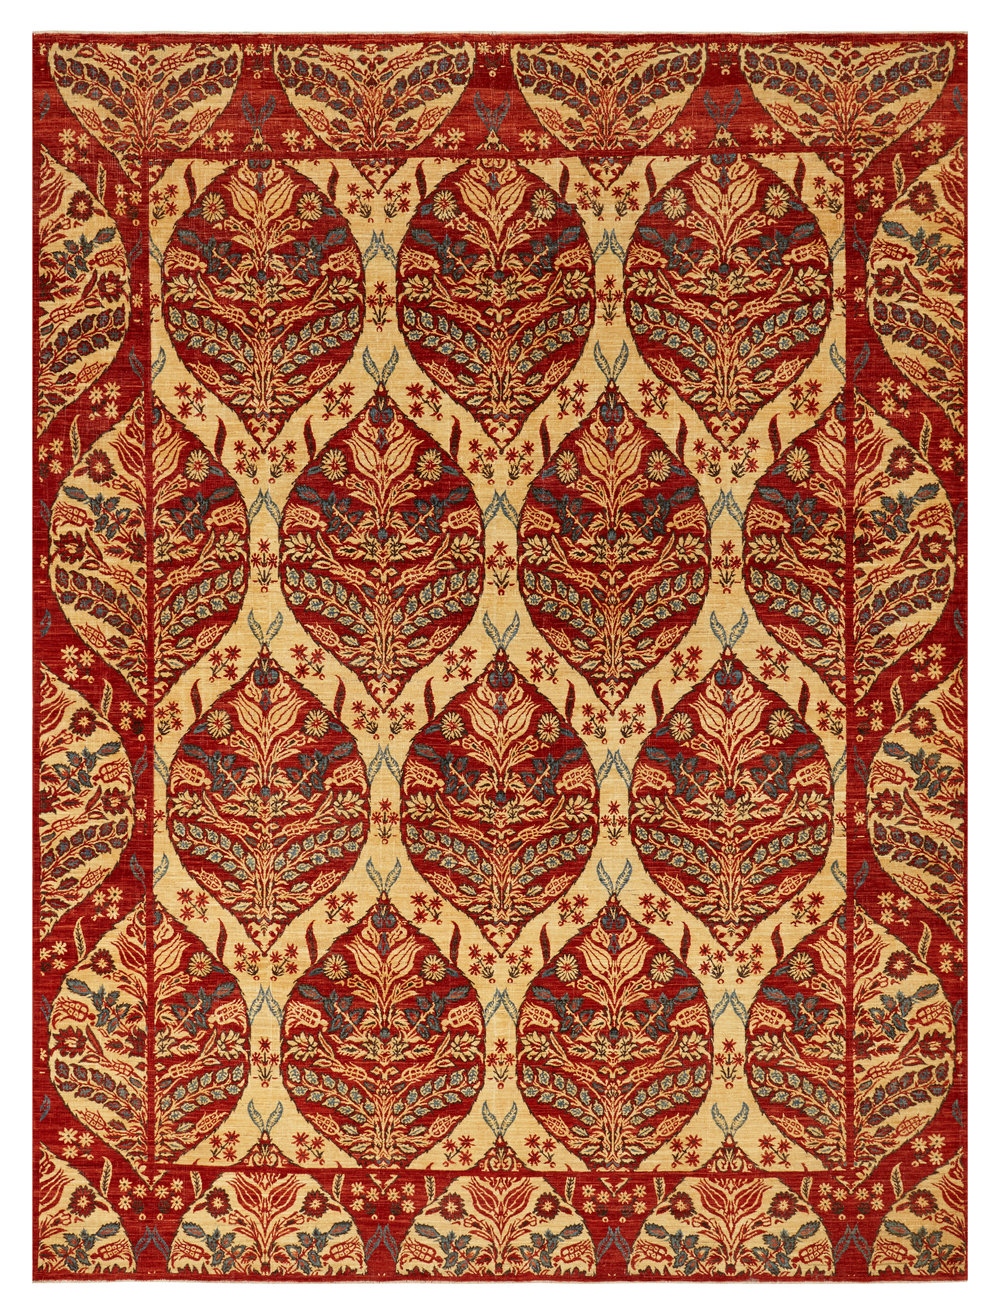 Pasha Red Gold, Afghan, 9' x 12'